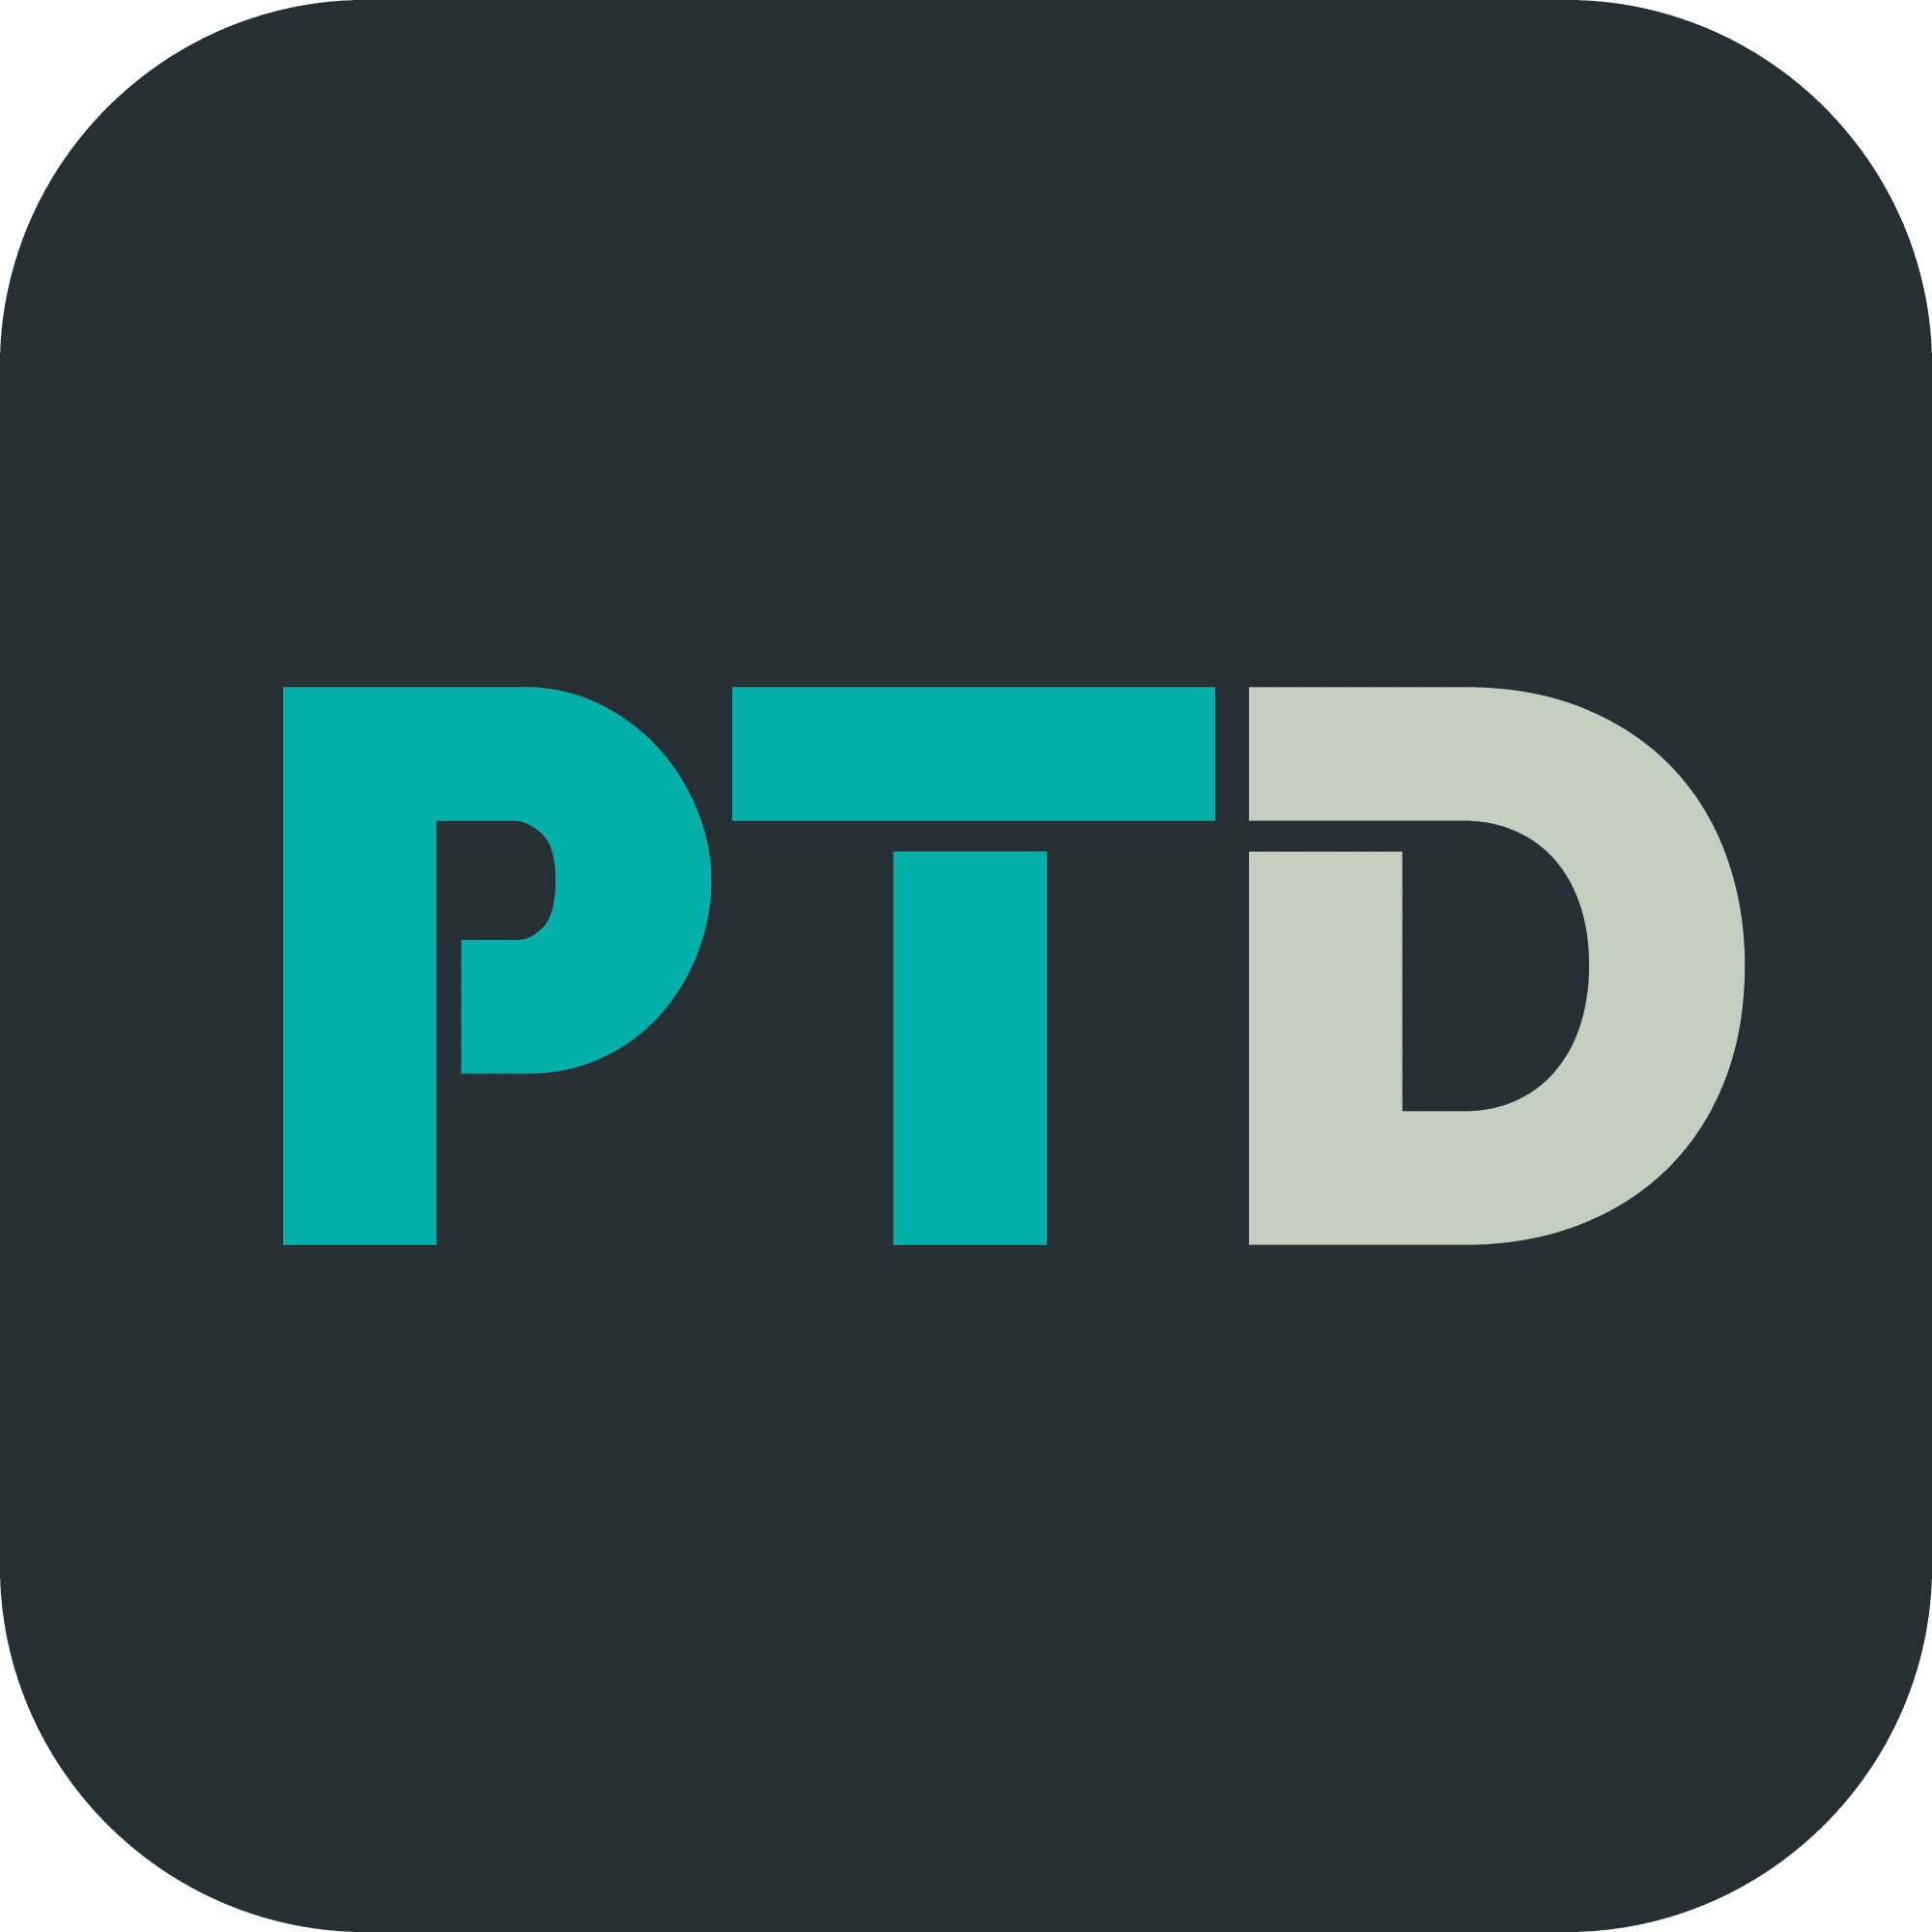 PT Distinction - Personal Trainer Software : SaaSworthy.com